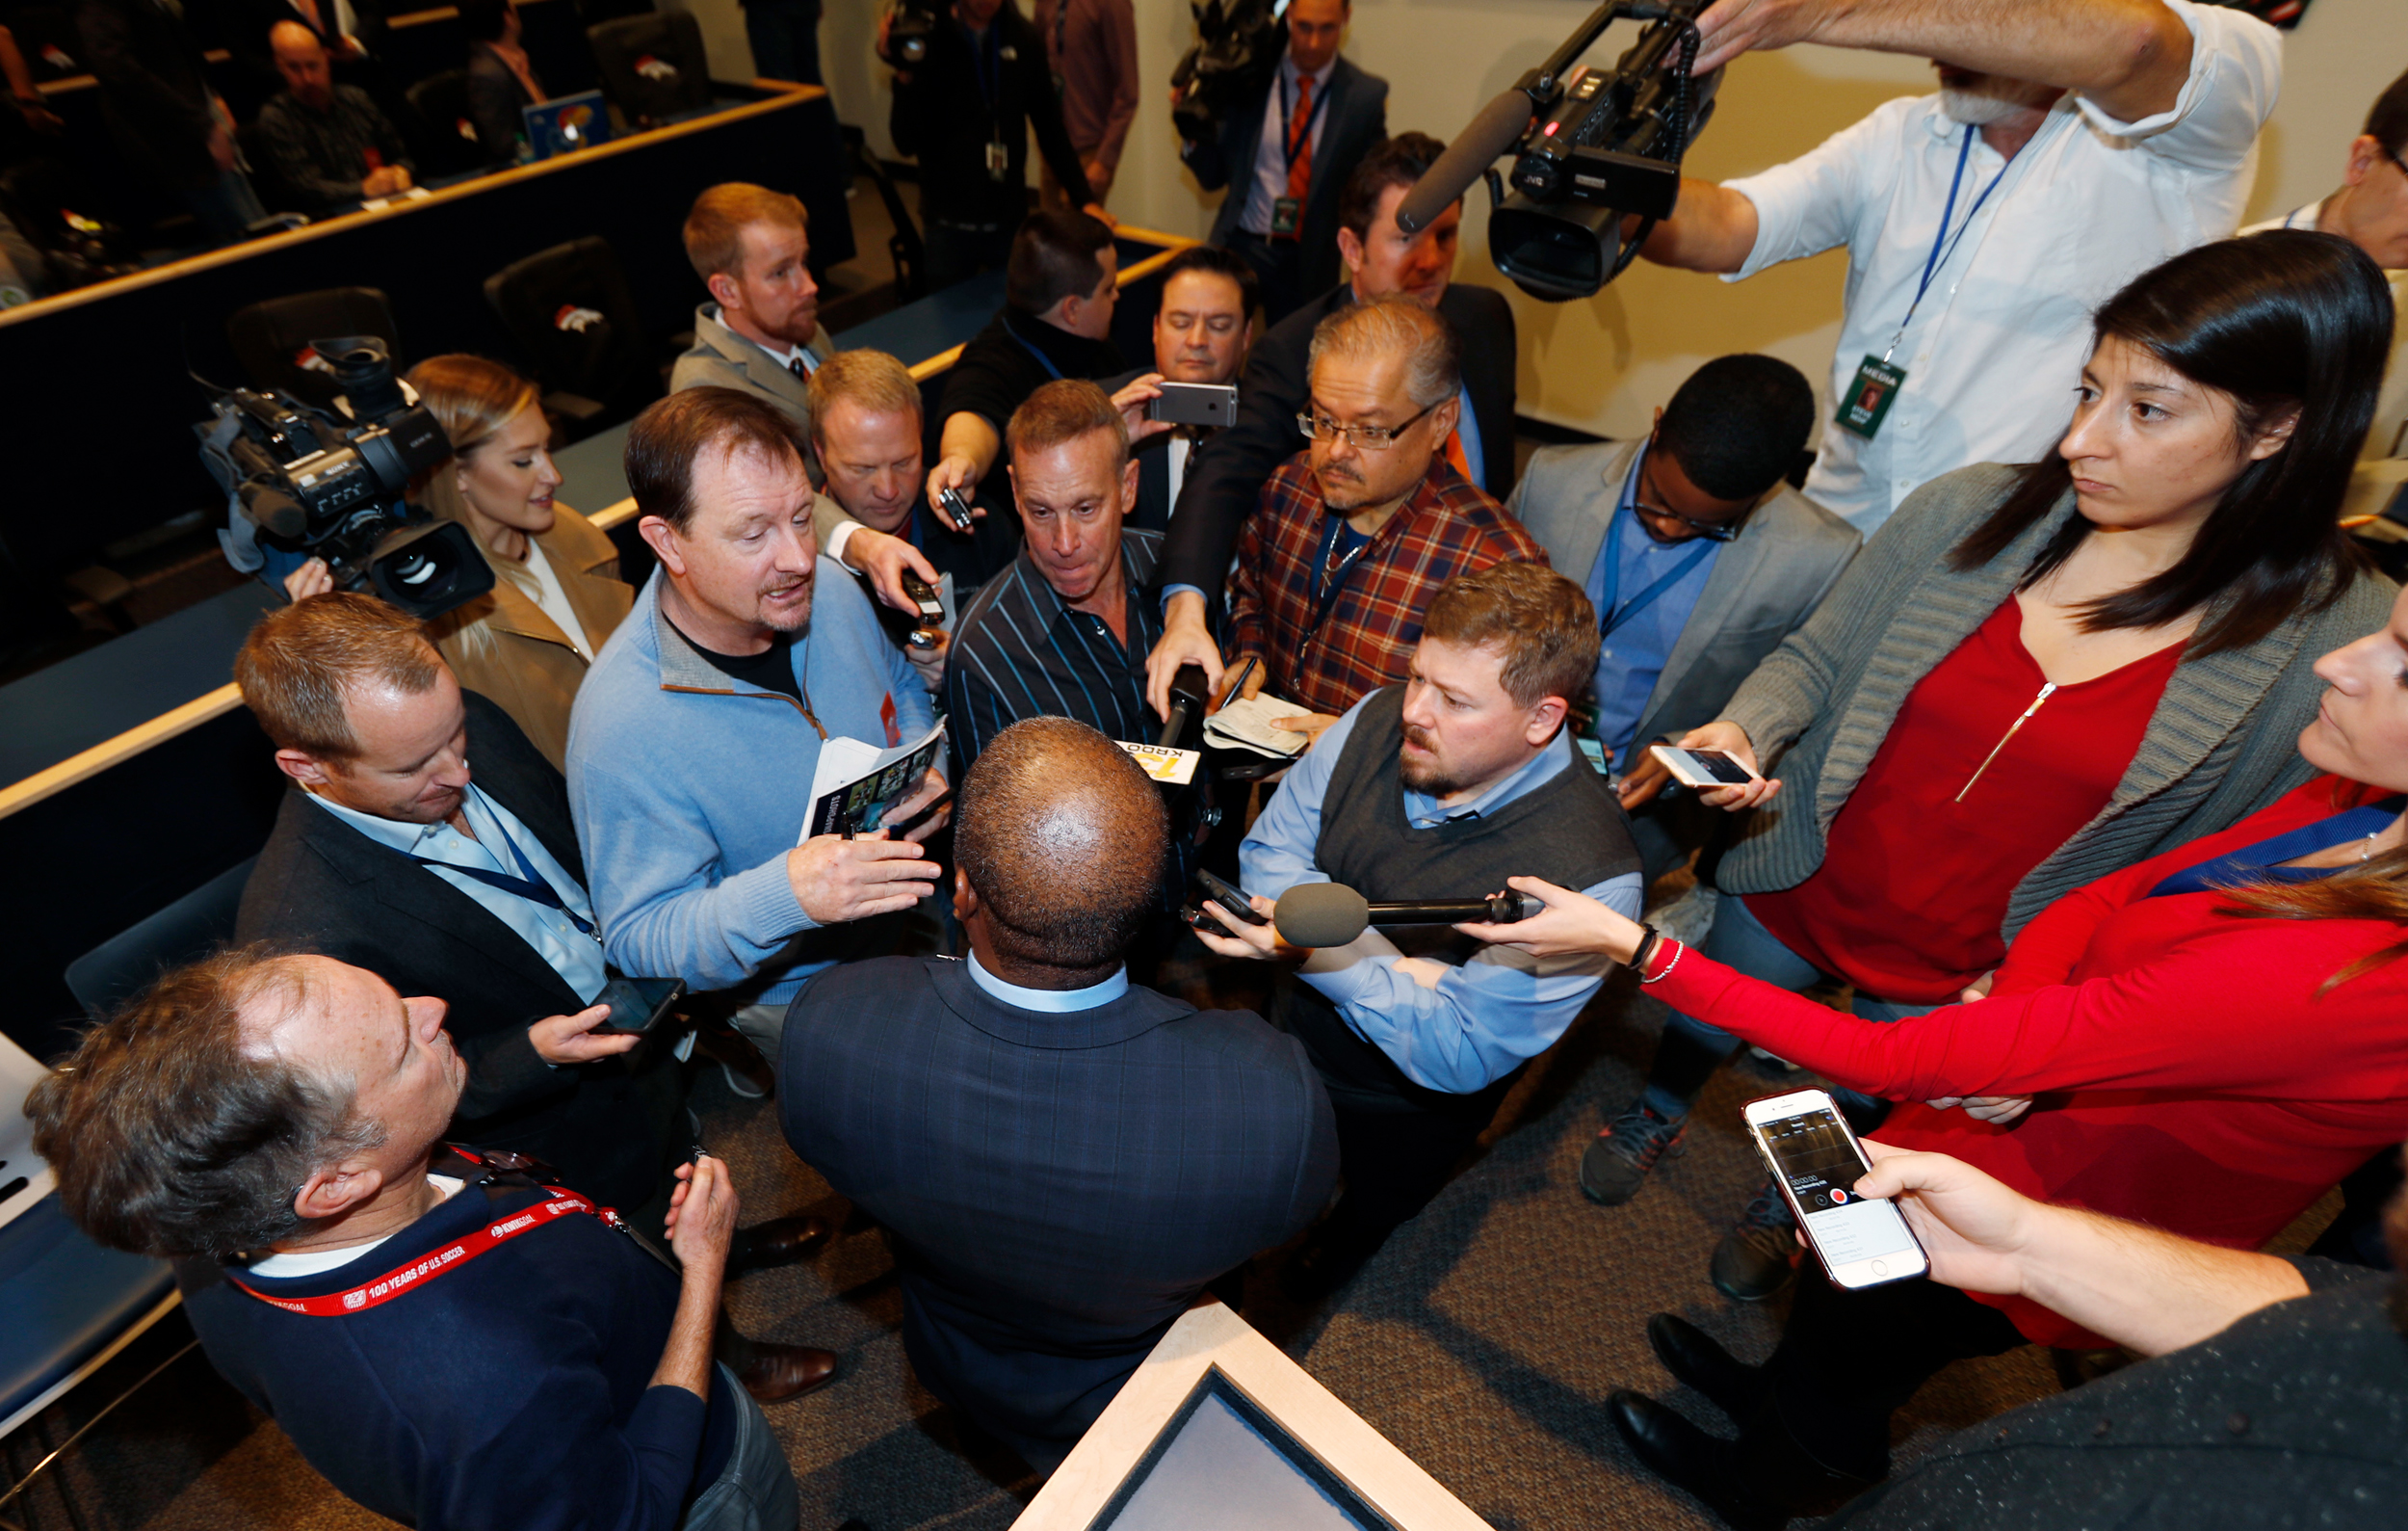 Vance Joseph, bottom center, is surrounded by reporters after Joseph was introduced as the new head coach of the Denver Broncos during a news conference at the team's headquarters Thursday, Jan. 12, 2017, in Englewood, Colo.